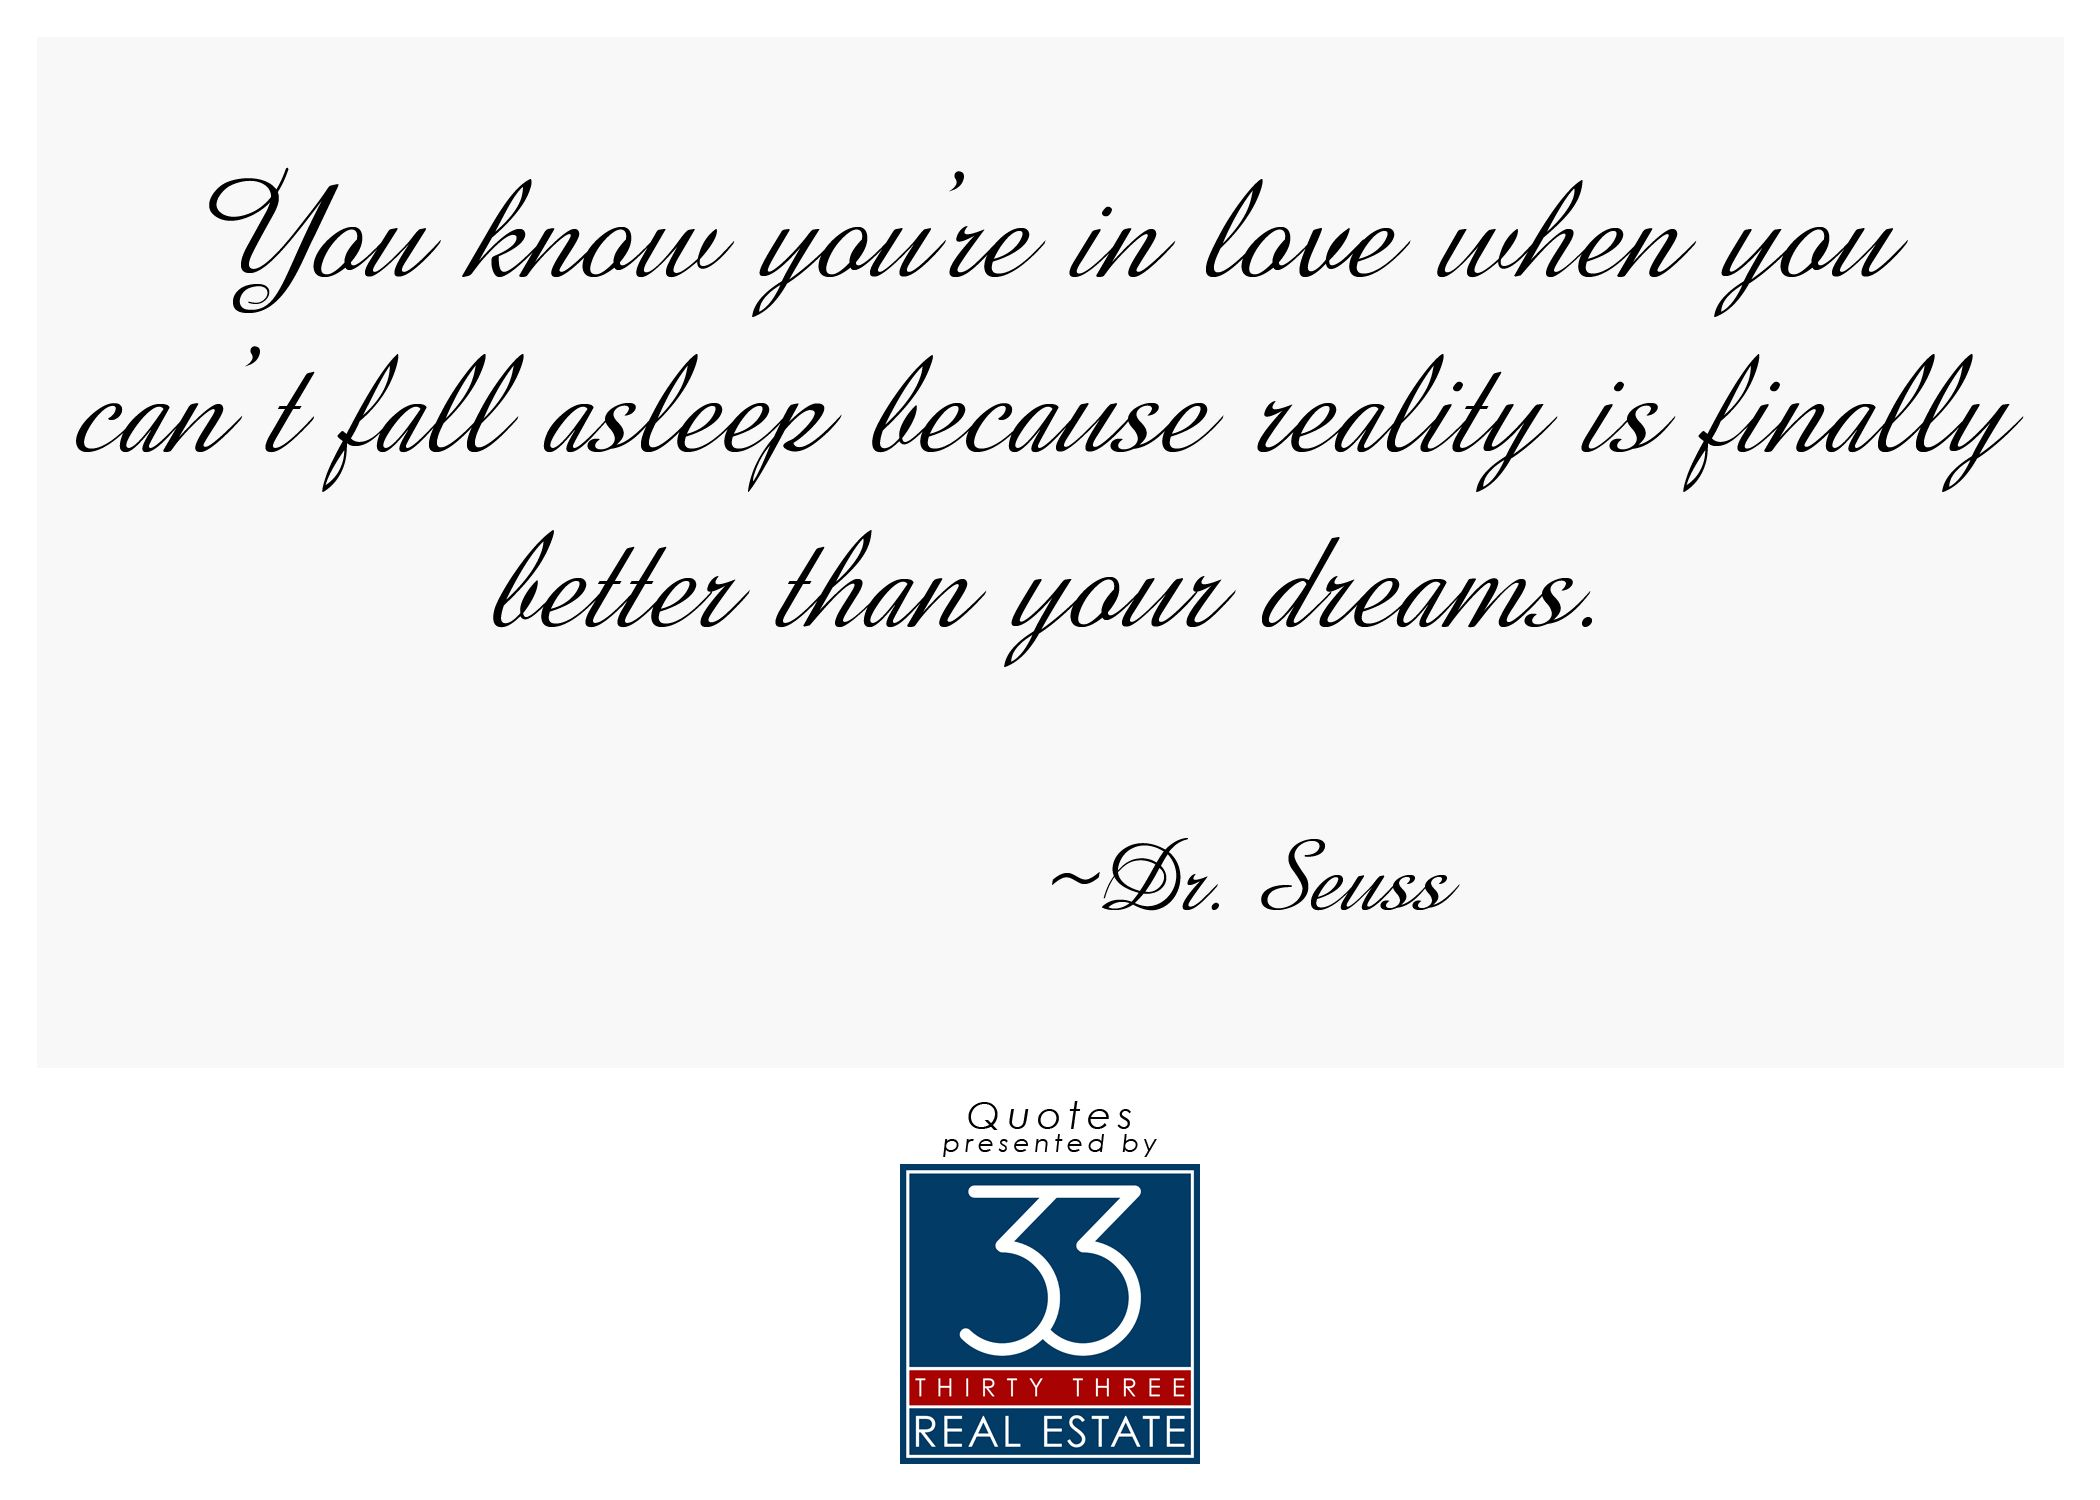 You know you're in love when you can't fall asleep because reality is finally better than your dreams. | Dr. Seuss